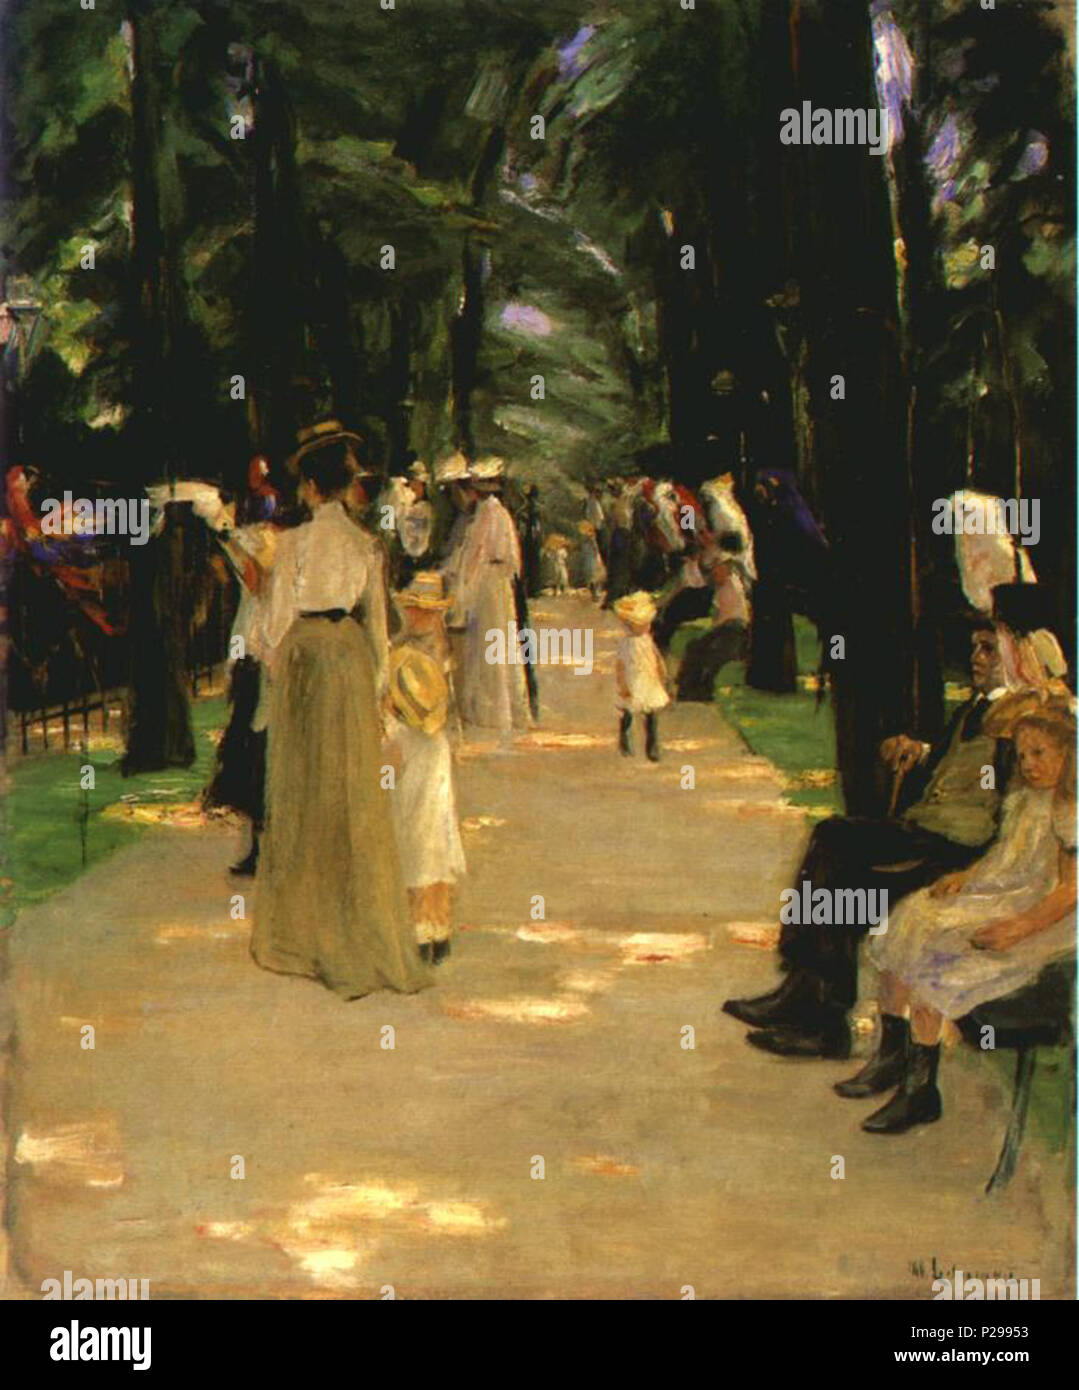 . Parrot Alley . 1902 176 Liebermann Papageienallee 1902 - Stock Image